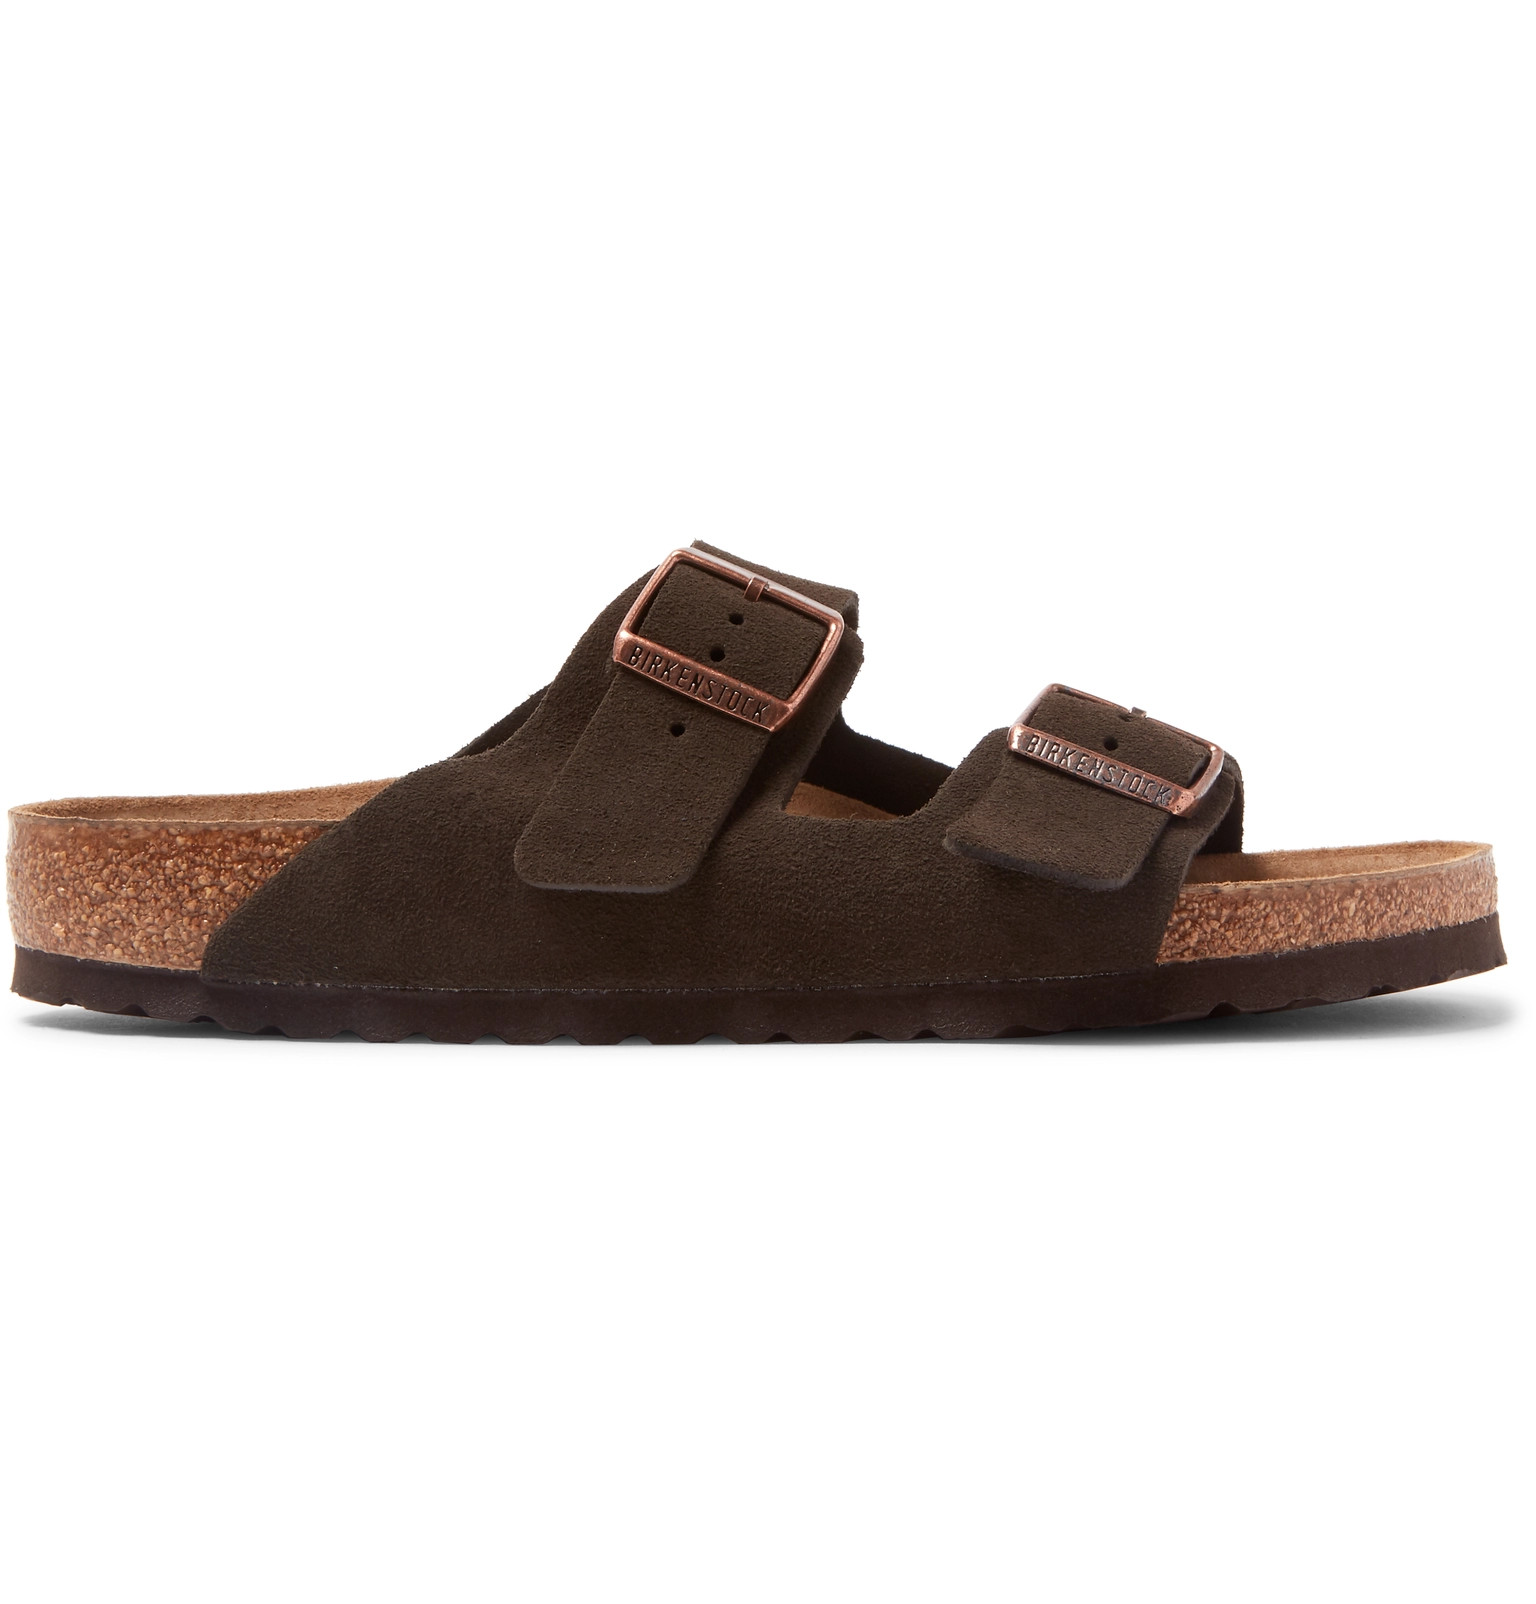 242 Years Later, Birkenstock Is Still Ruling The Shoe Game